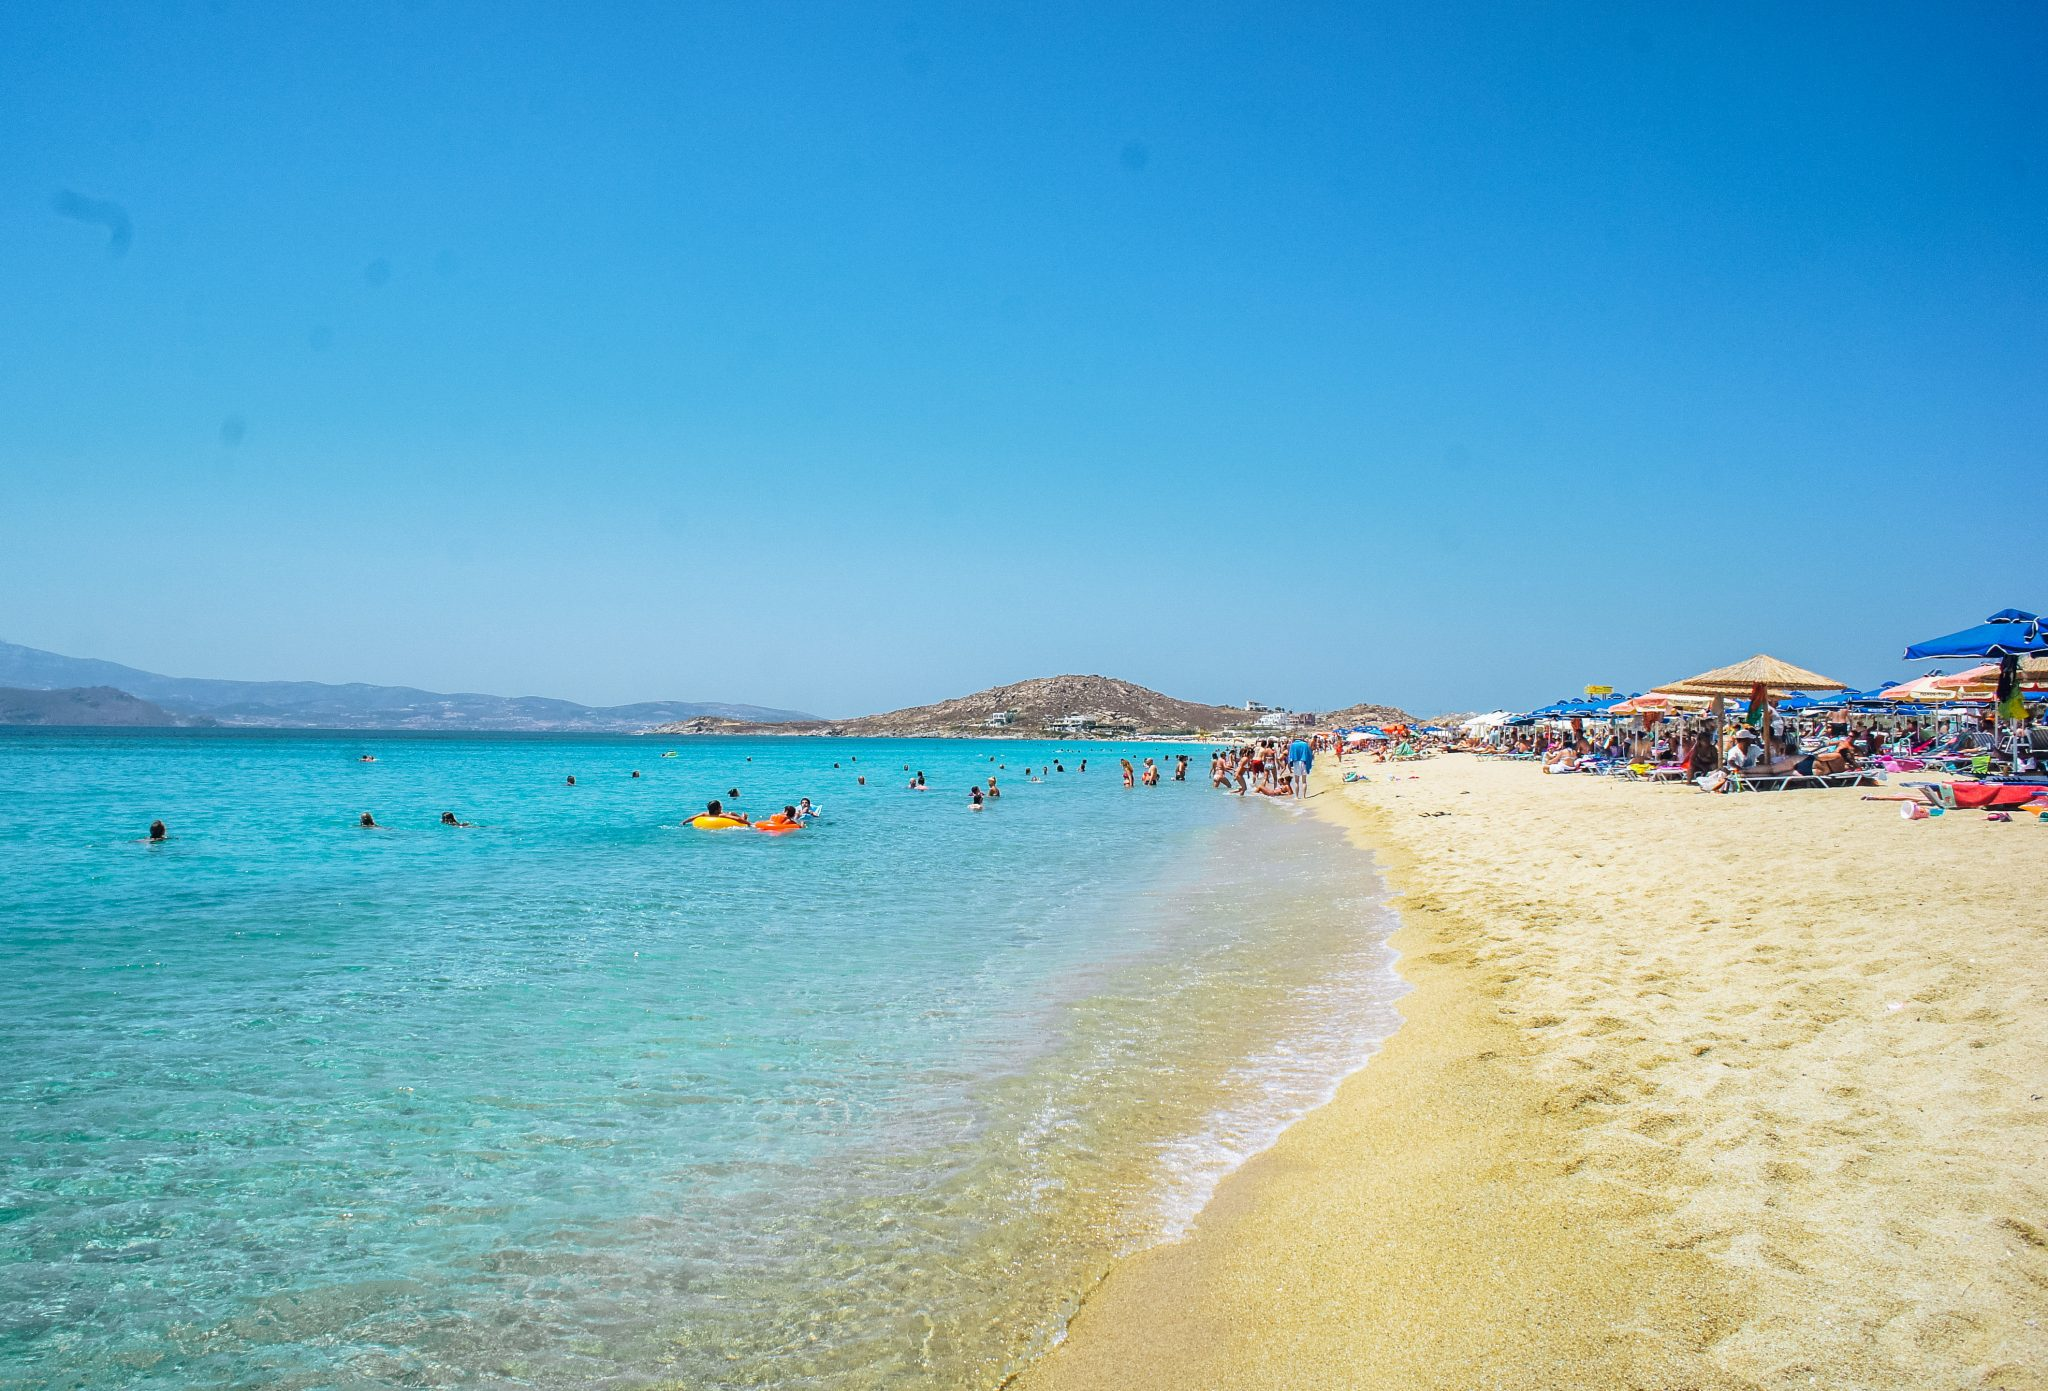 agios prokopios beach in naxos, greece